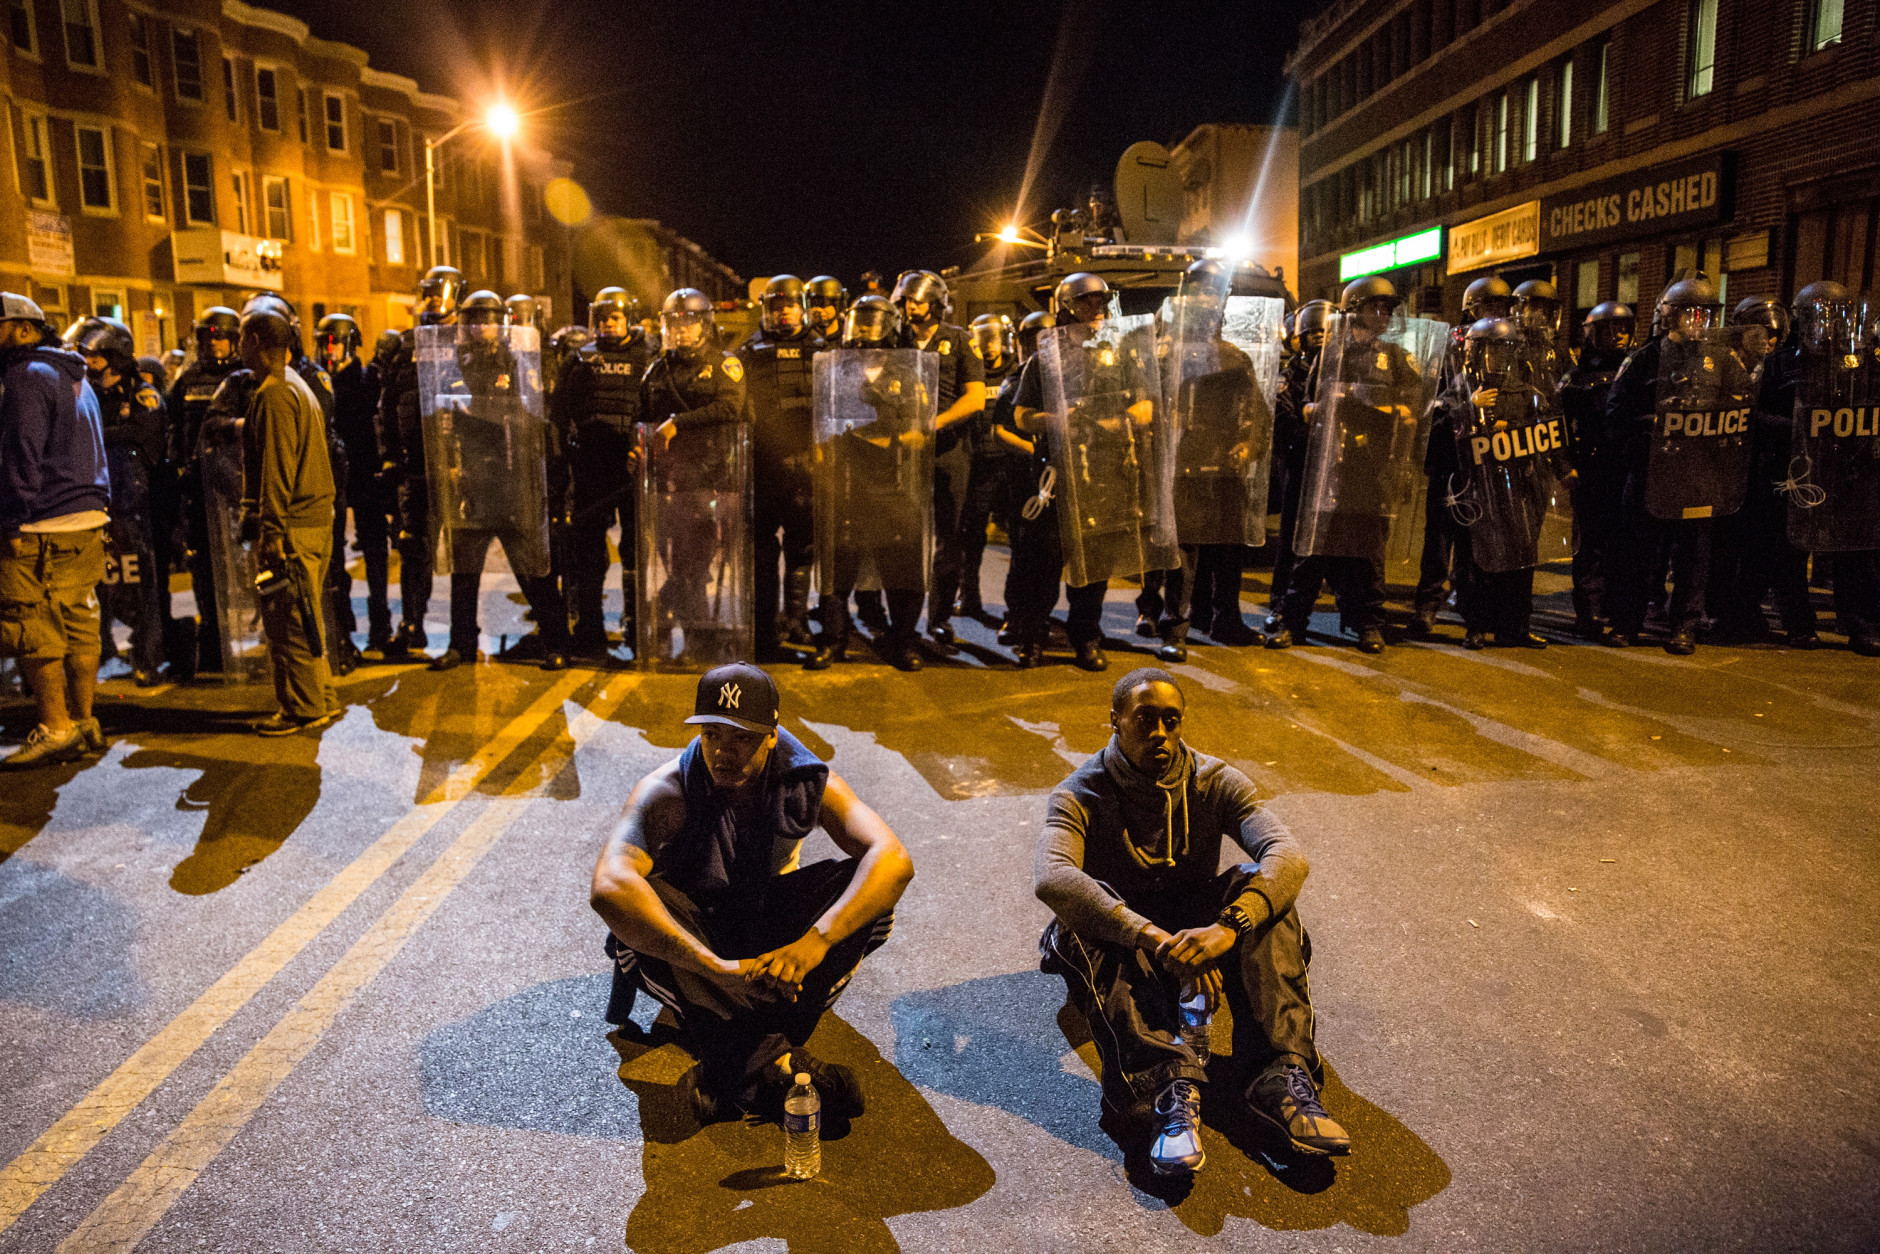 BALTIMORE, MD - APRIL 28:  Two protesters sit on the ground in front of riot police minutes before a mandatory, city-wide curfew of 10 p.m. near the CVS pharmacy that was set on fire yesterday during rioting after the funeral of Freddie Gray, on April 28, 2015 in Baltimore, Maryland. Gray, 25, was arrested for possessing a switch blade knife April 12 outside the Gilmor Houses housing project on Baltimore's west side. According to his attorney, Gray died a week later in the hospital from a severe spinal cord injury he received while in police custody.  (Photo by Andrew Burton/Getty Images)